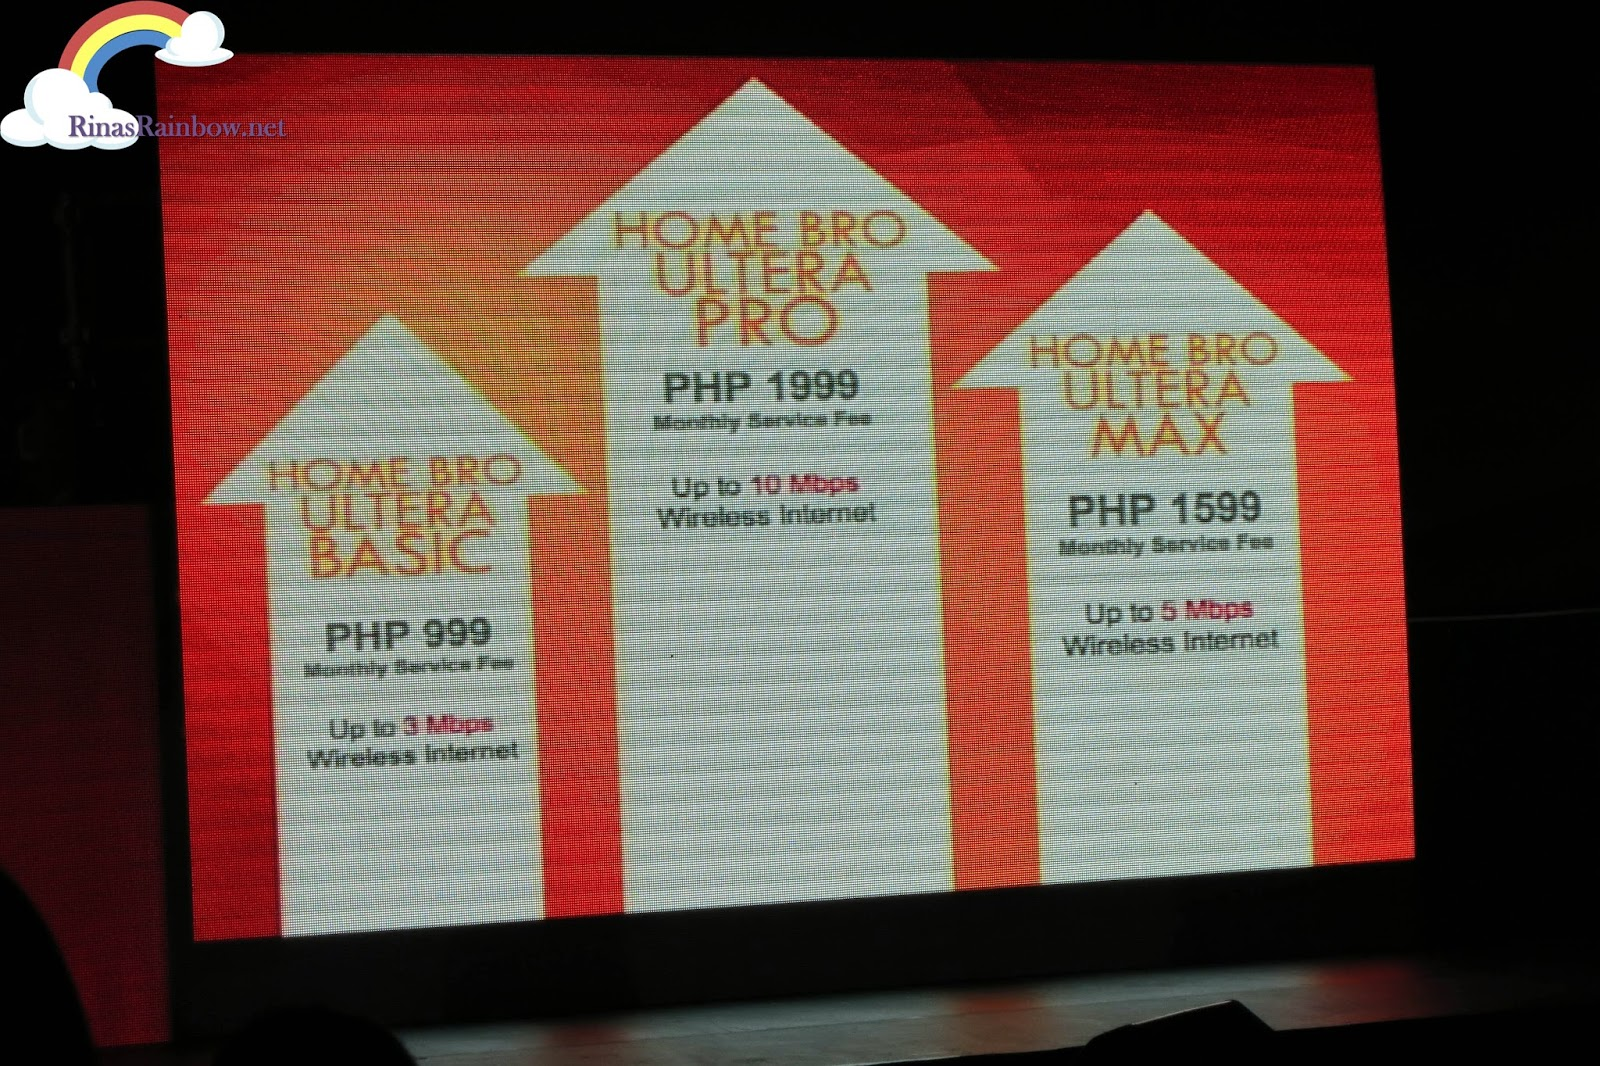 PLDT HOME Bro Ultera packages